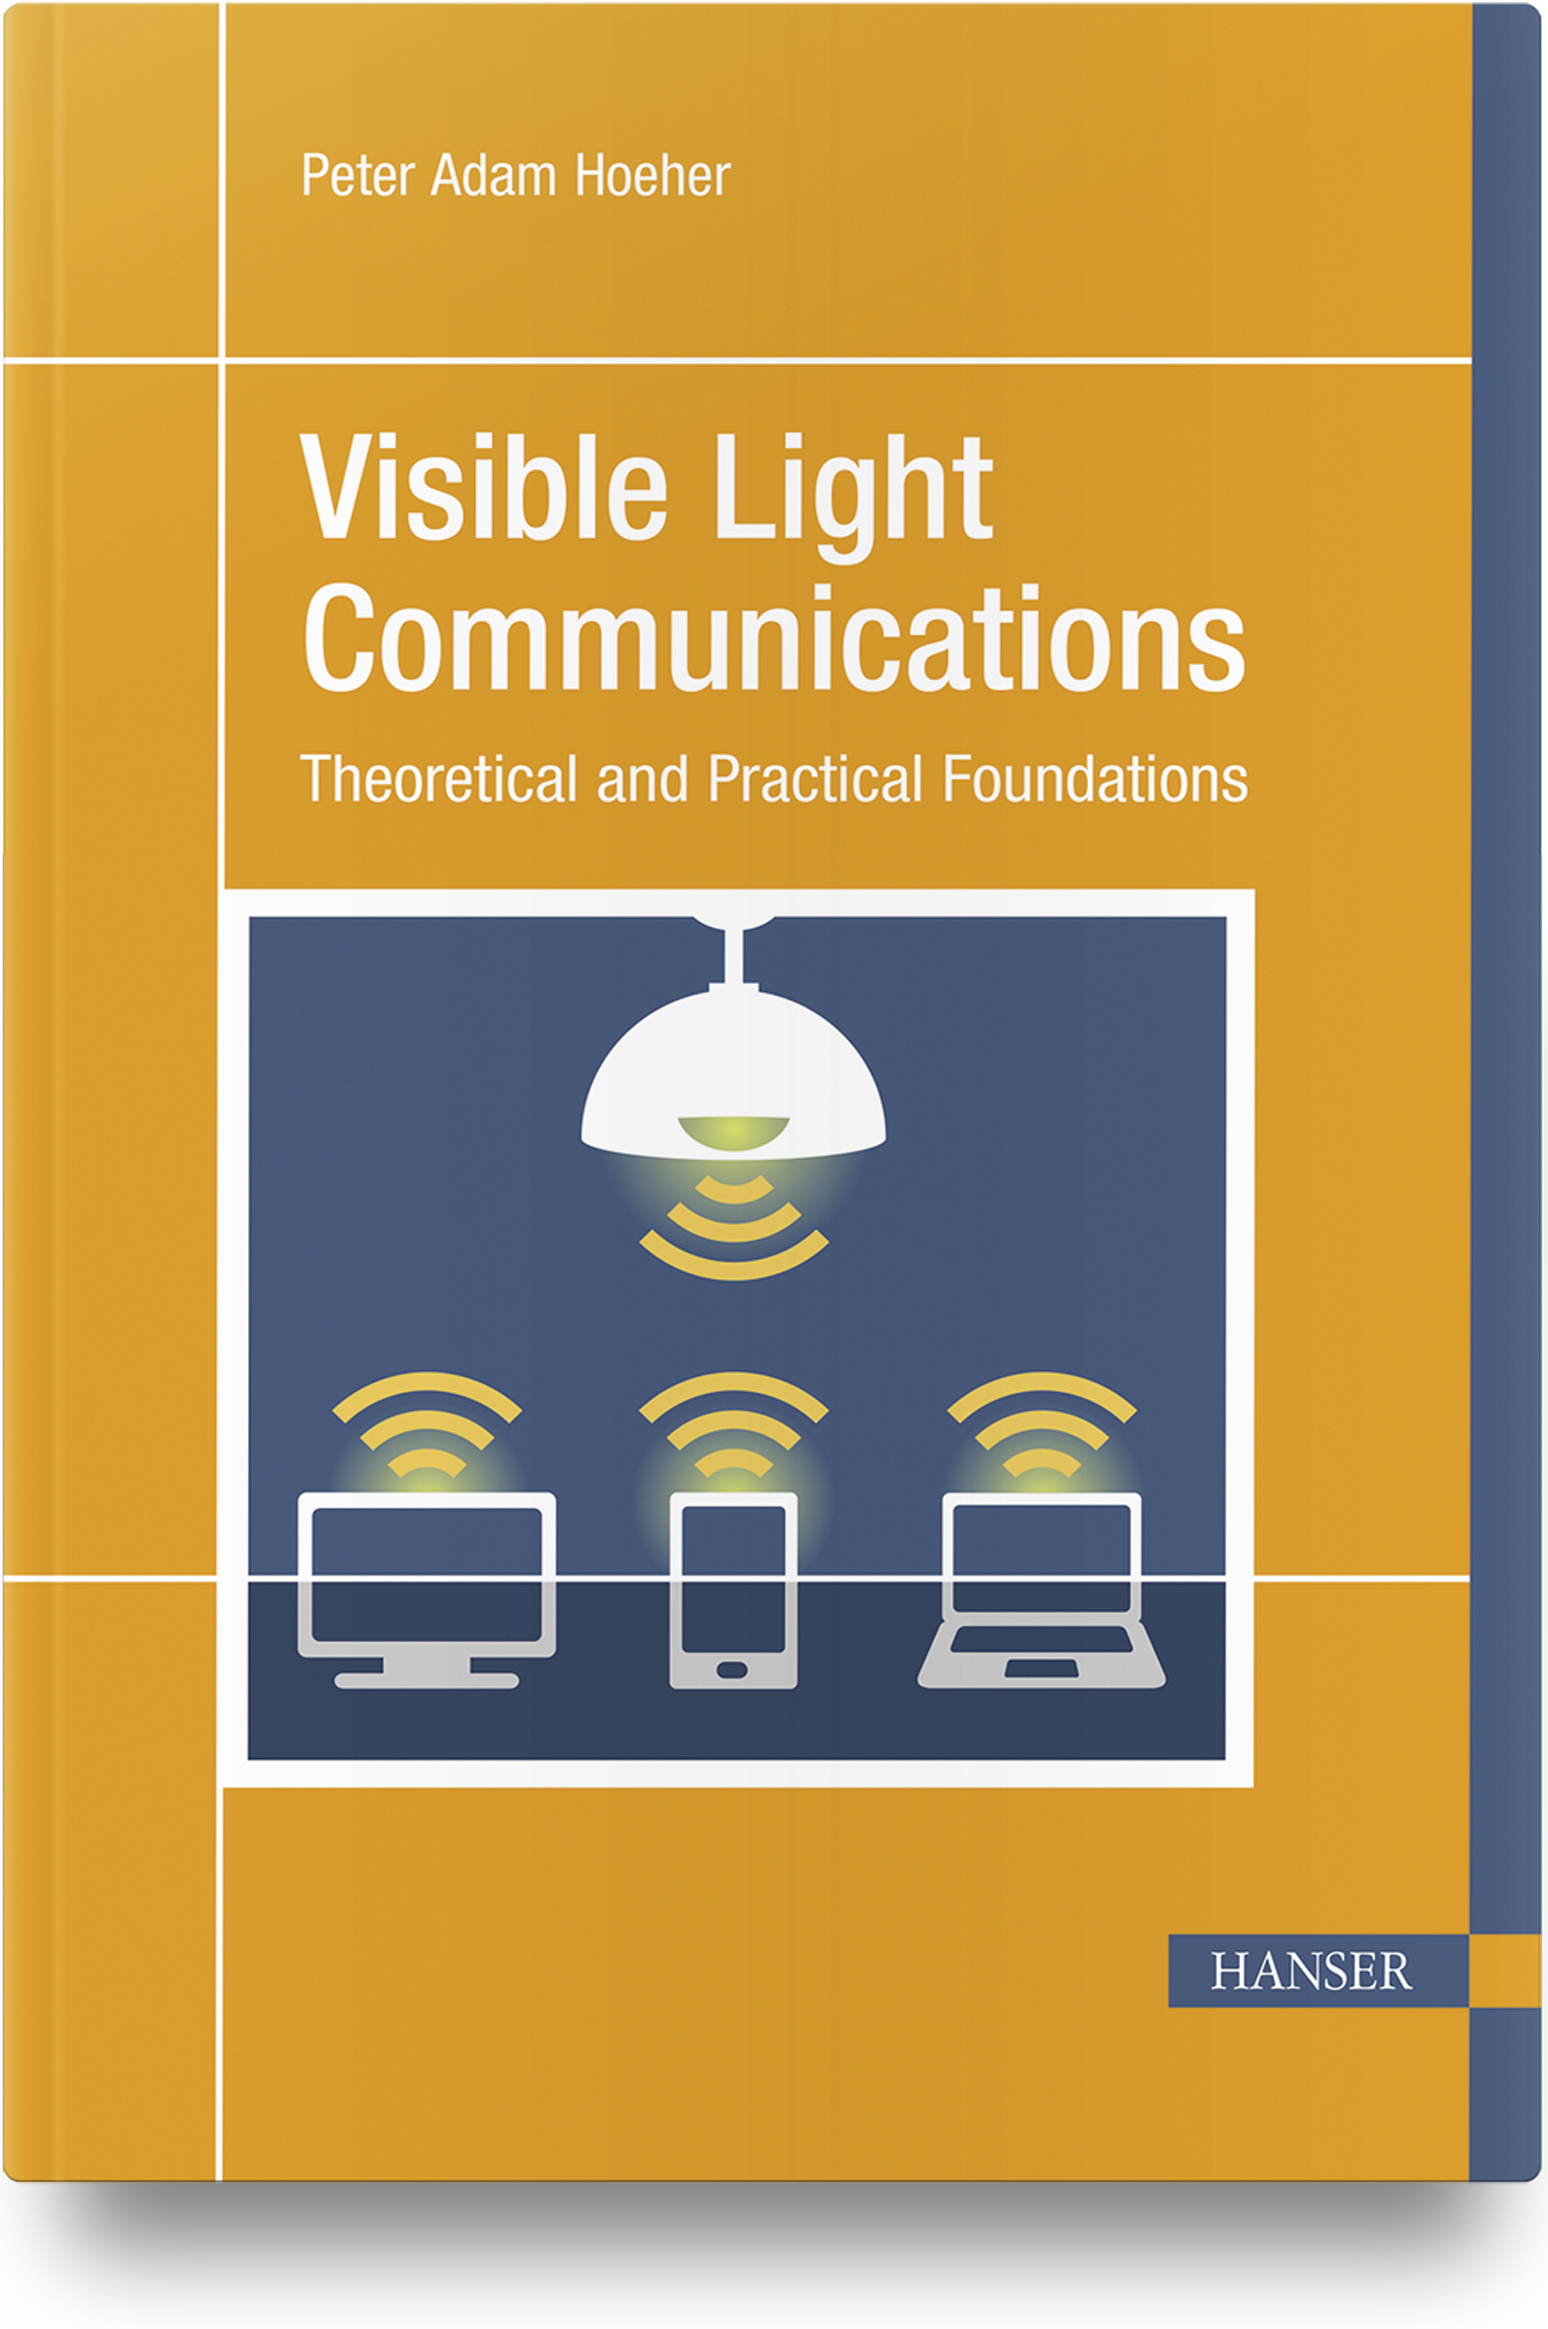 Hoeher, Visible Light Communications, 978-3-446-46206-9